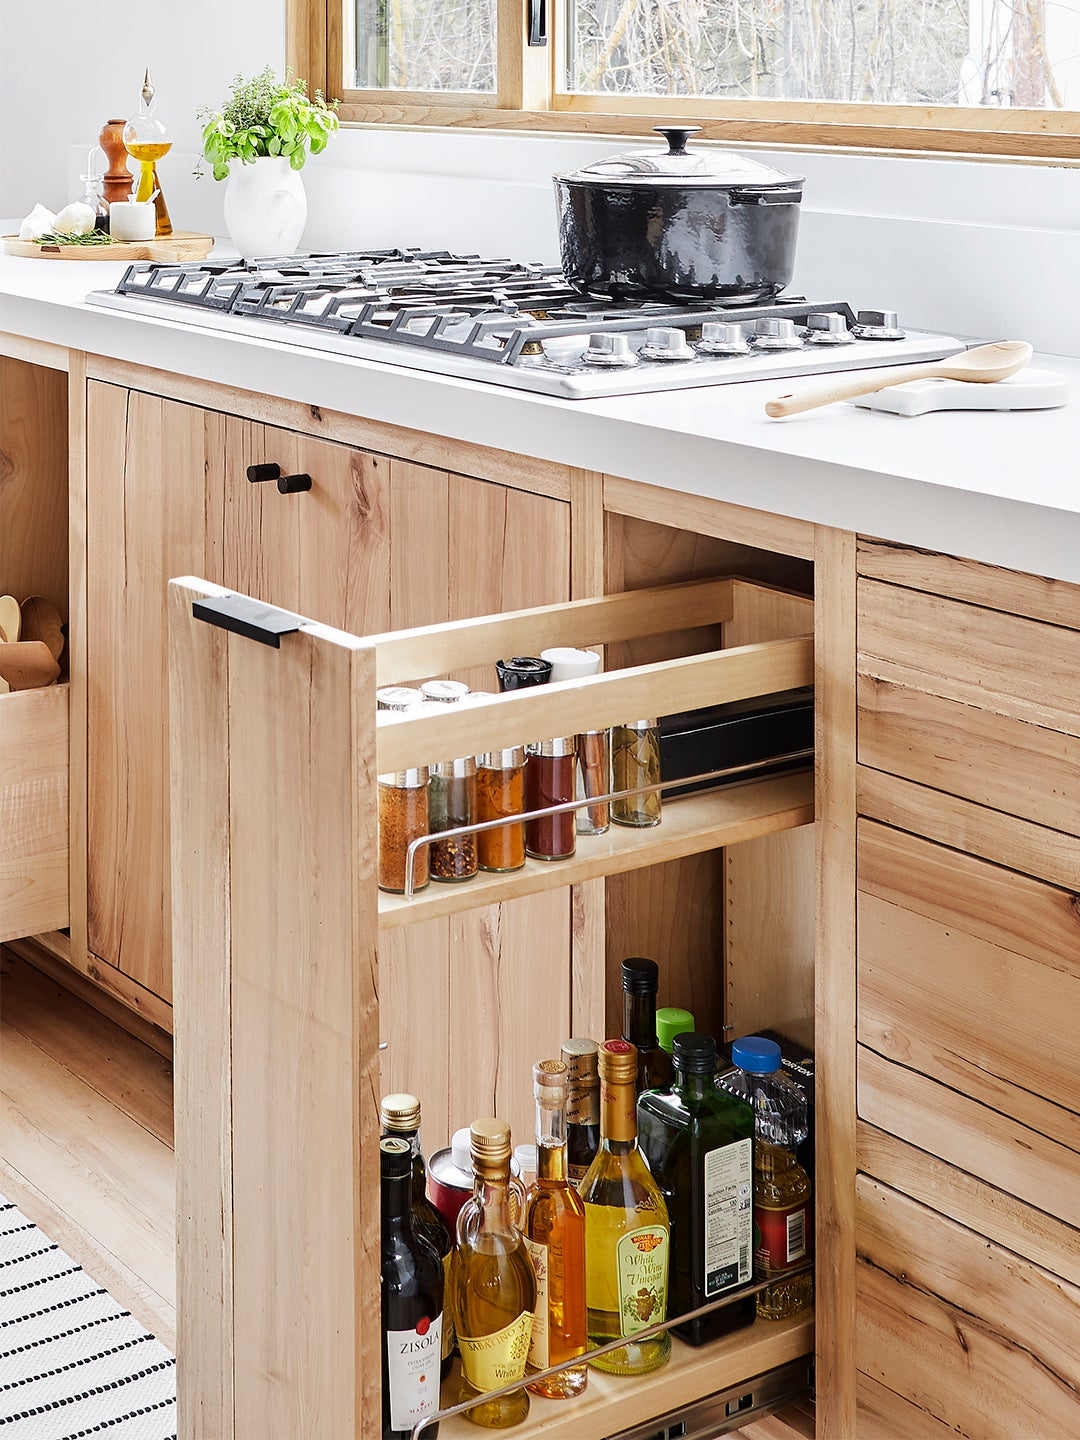 drawer coming out of a cabinet with spices in it